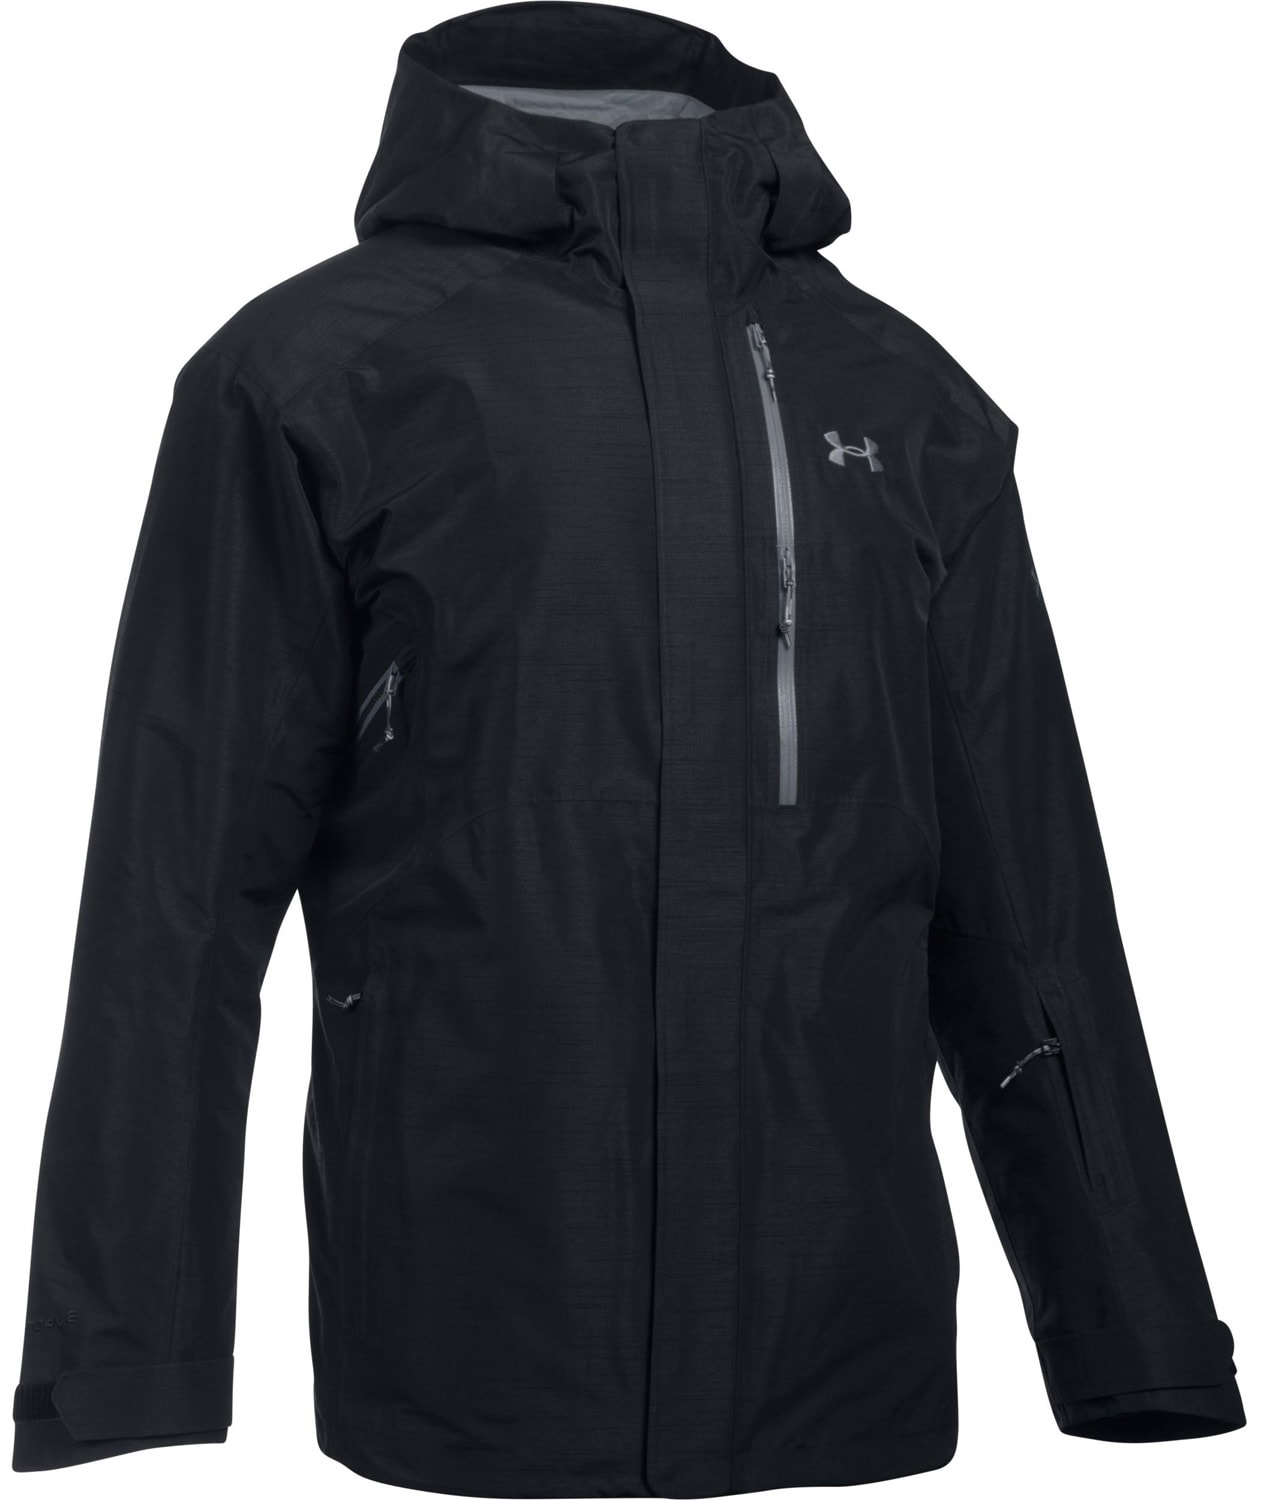 Under Armour Coldgear Infrared Revy Insulated Snowboard Jacket ua3ciri04bogsg17zz-under-armour-snowboard-jackets